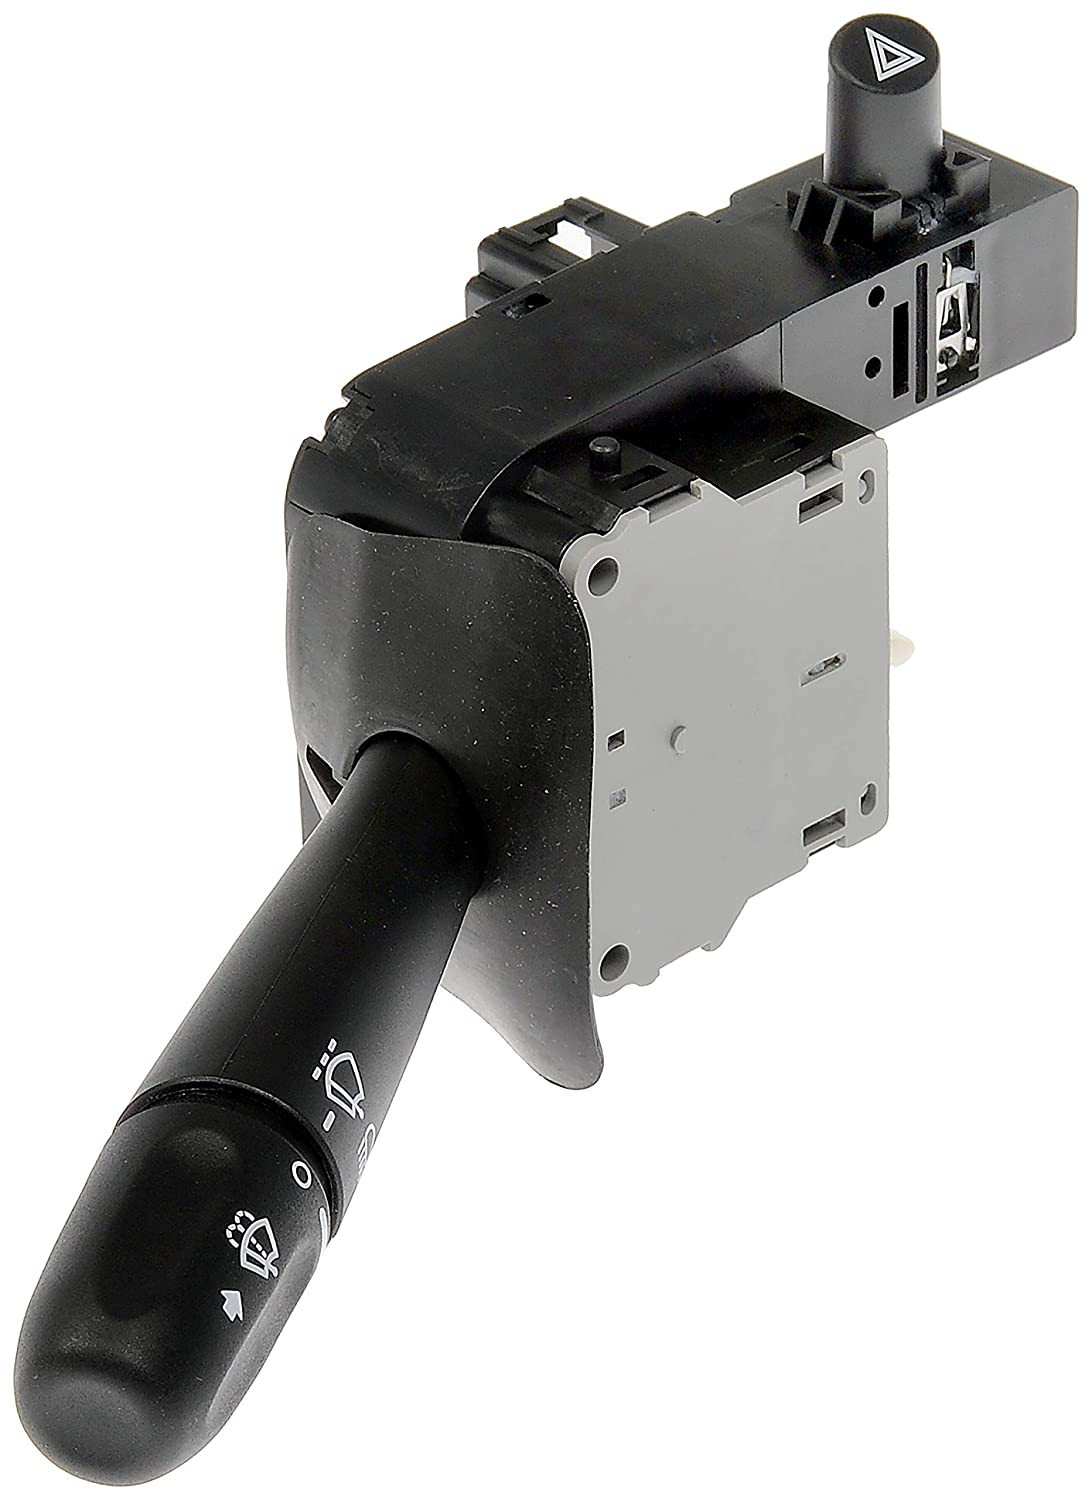 Dorman 2330848 Console Multi Function Switch for Select Chrysler//Dodge//Mitsubishi Models